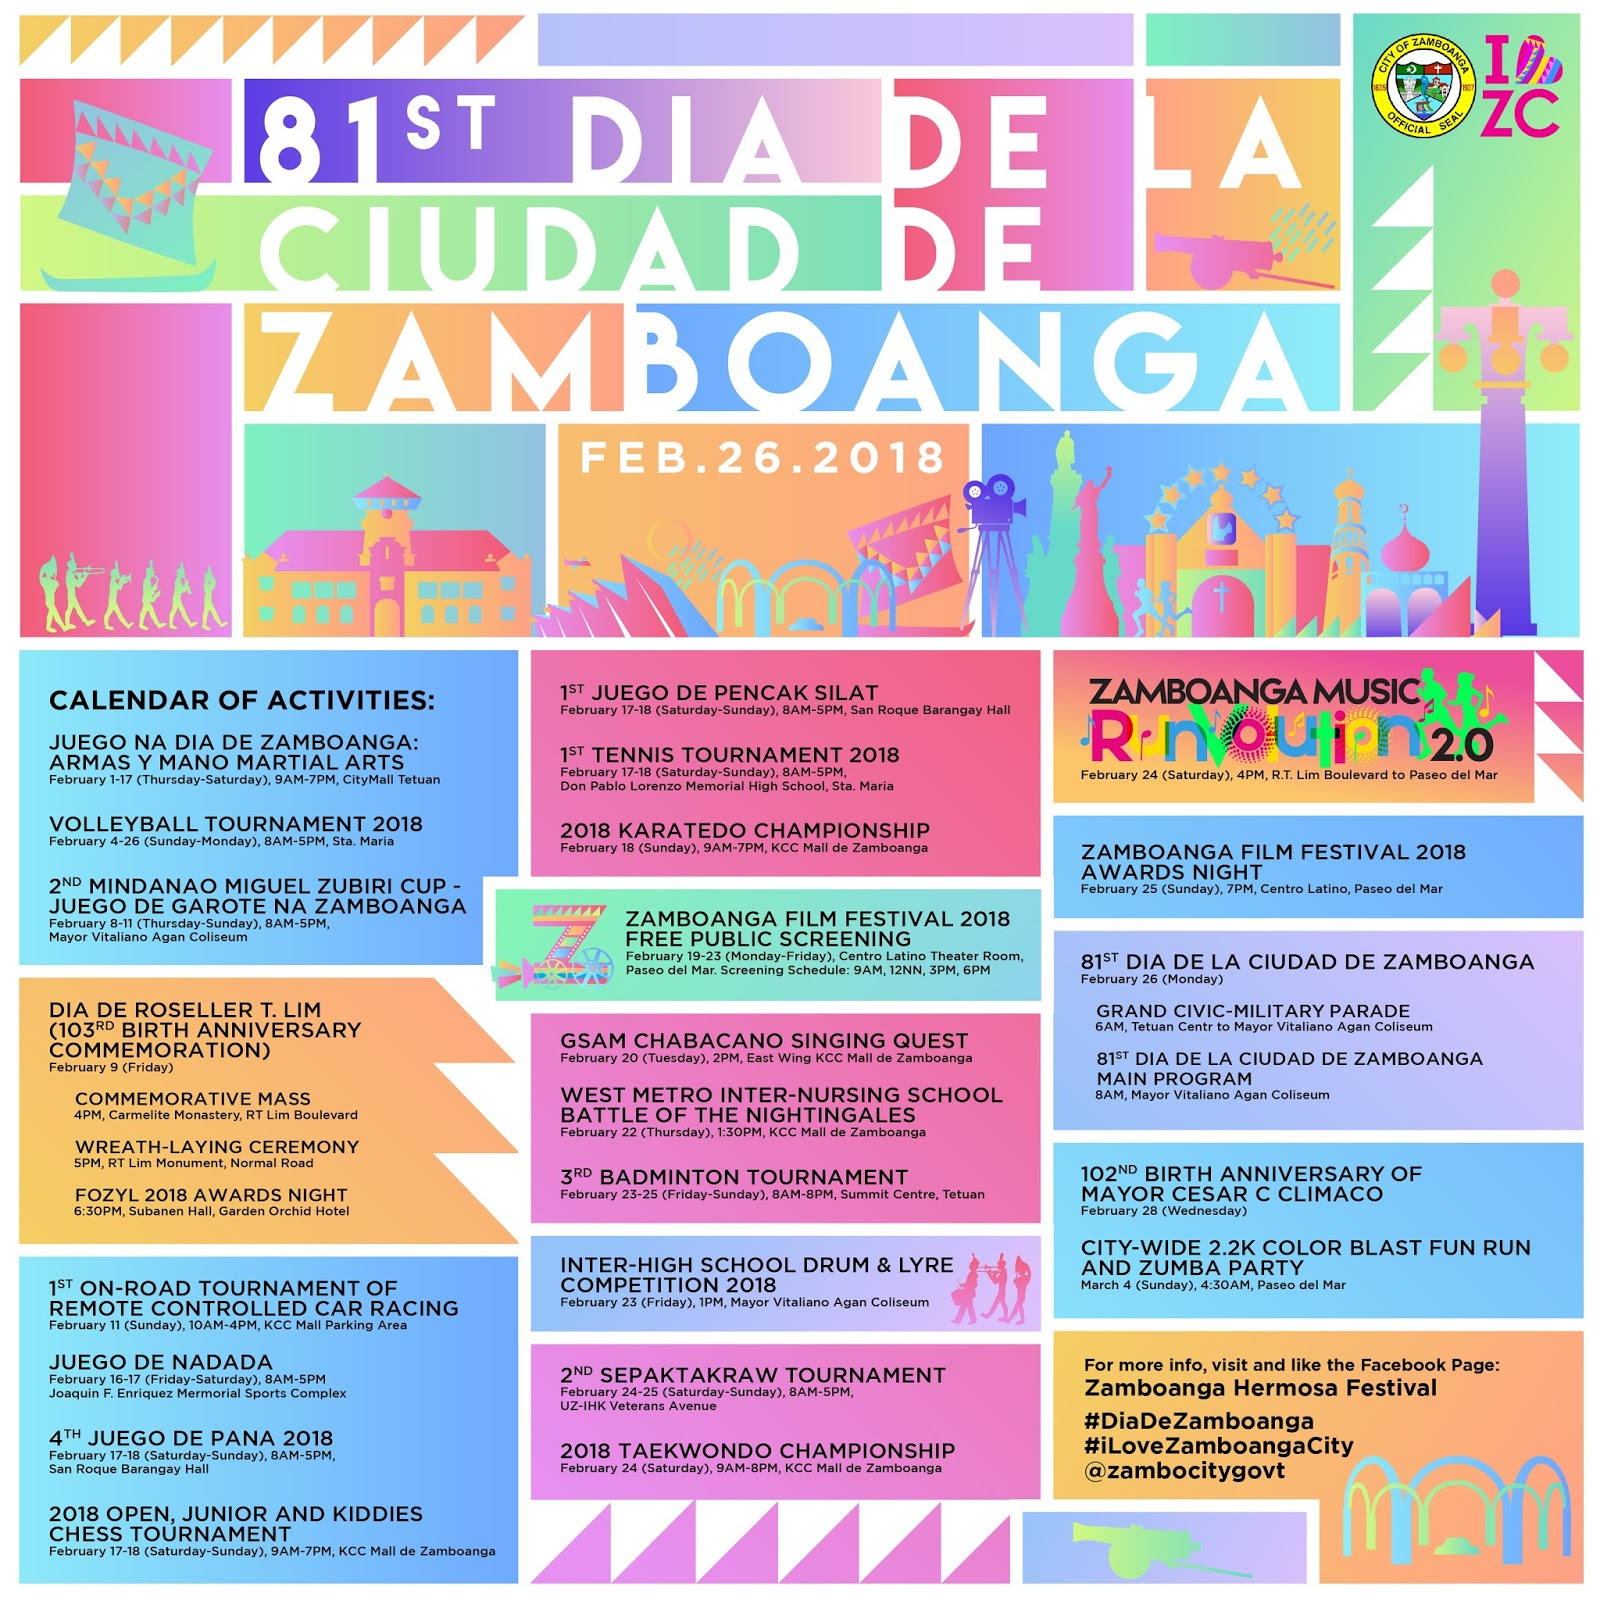 81st Dia de la Ciudad de Zamboanga Schedule Calendar or Activities